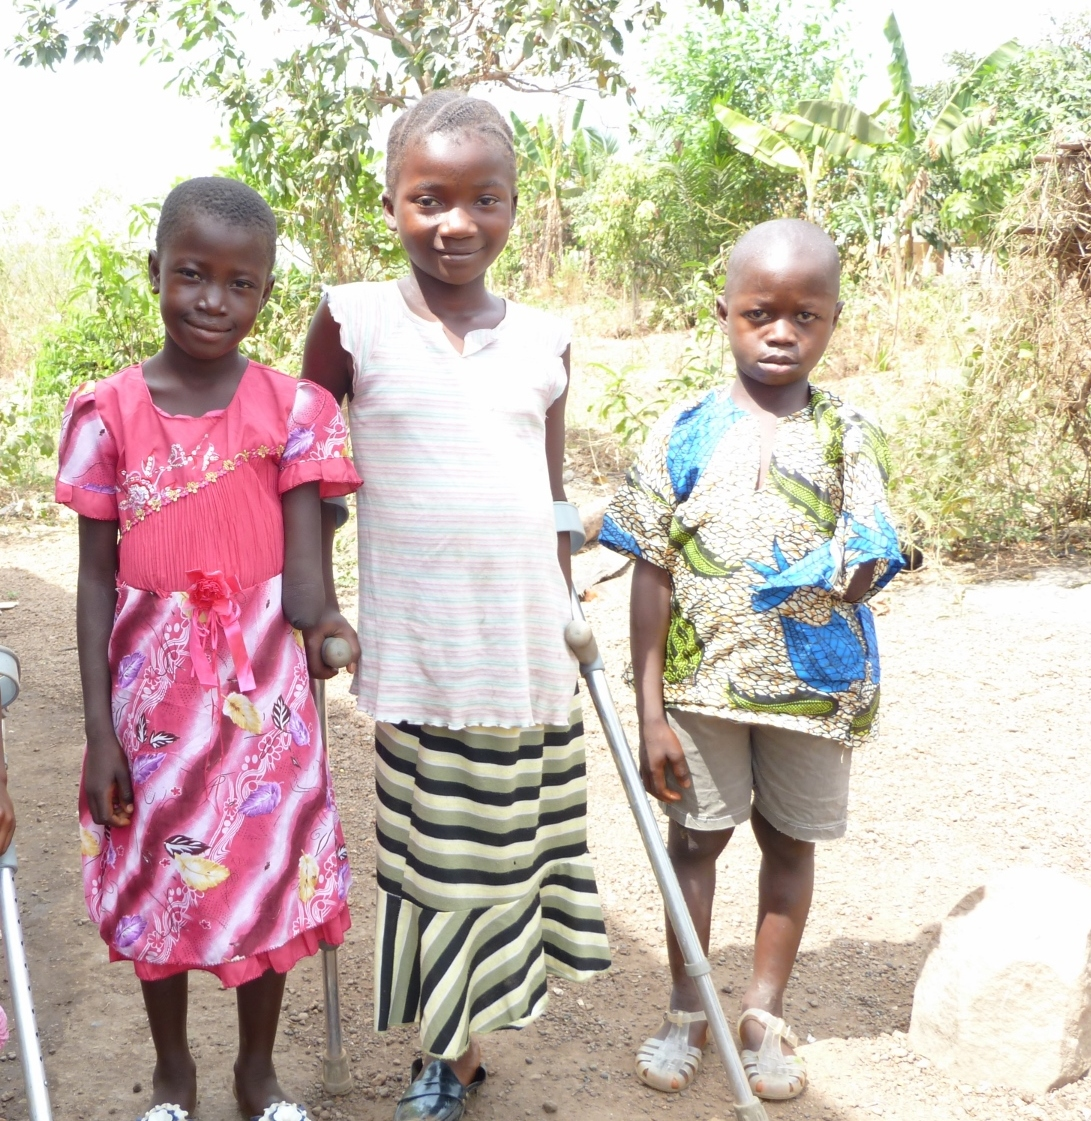 Three Young Beneficiaries From Sierra Leone Who Have Been Given New Limbs And Access To Education